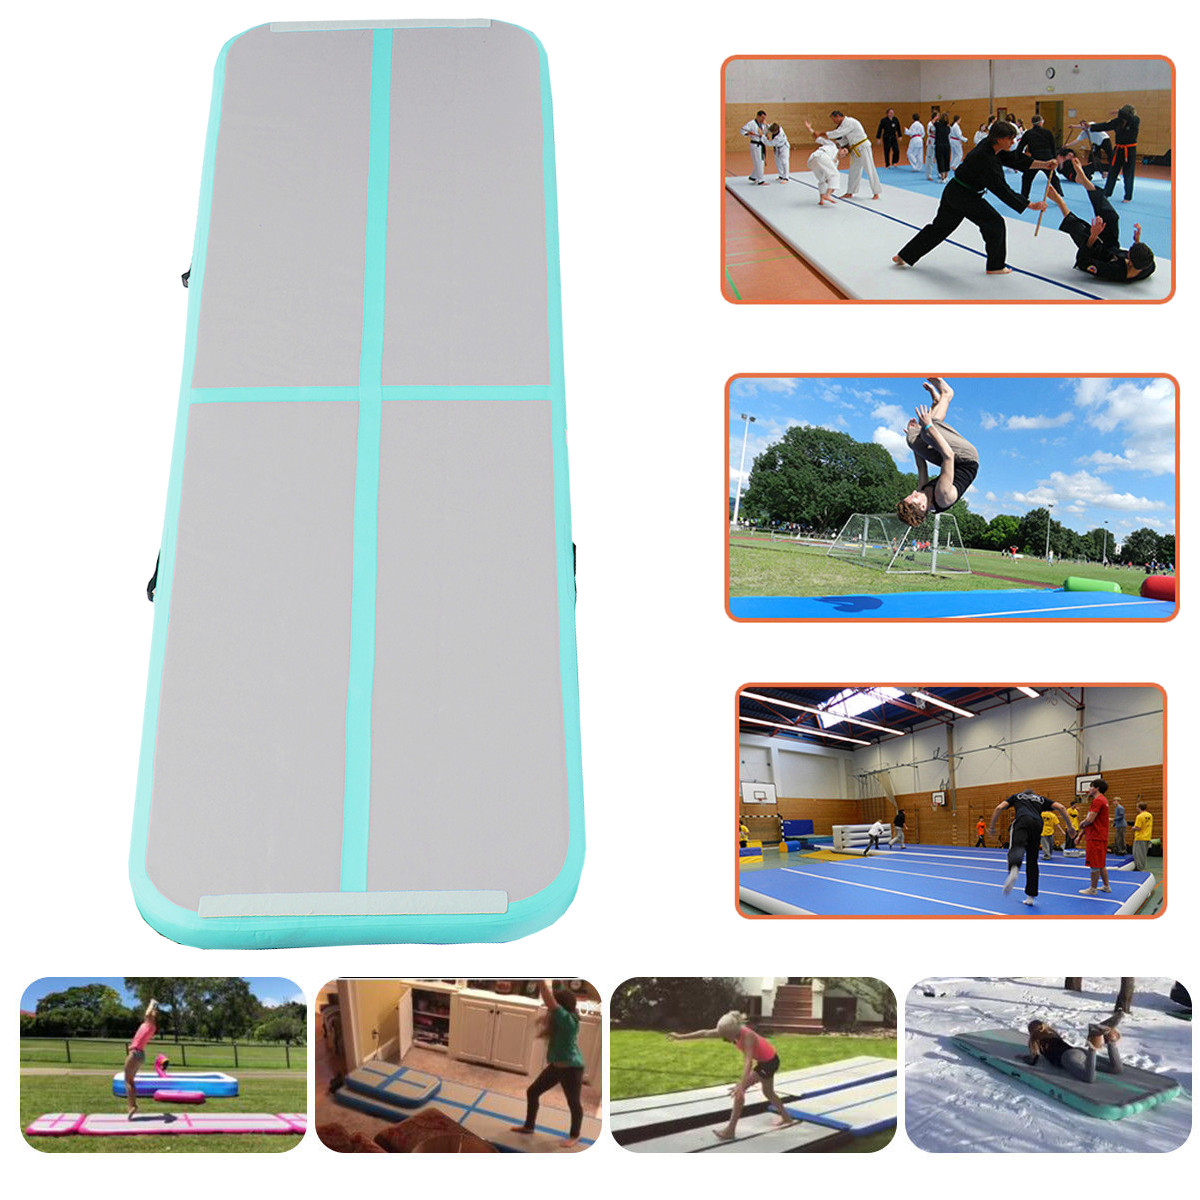 1Pcs 10ft x 1.3ft x 4inch Air Track Floor Home Gymnastics Tumbling Mats Inflatable Air Tumbling Tracks GYM For Floor Home Back Yard  (Not Included Pump)